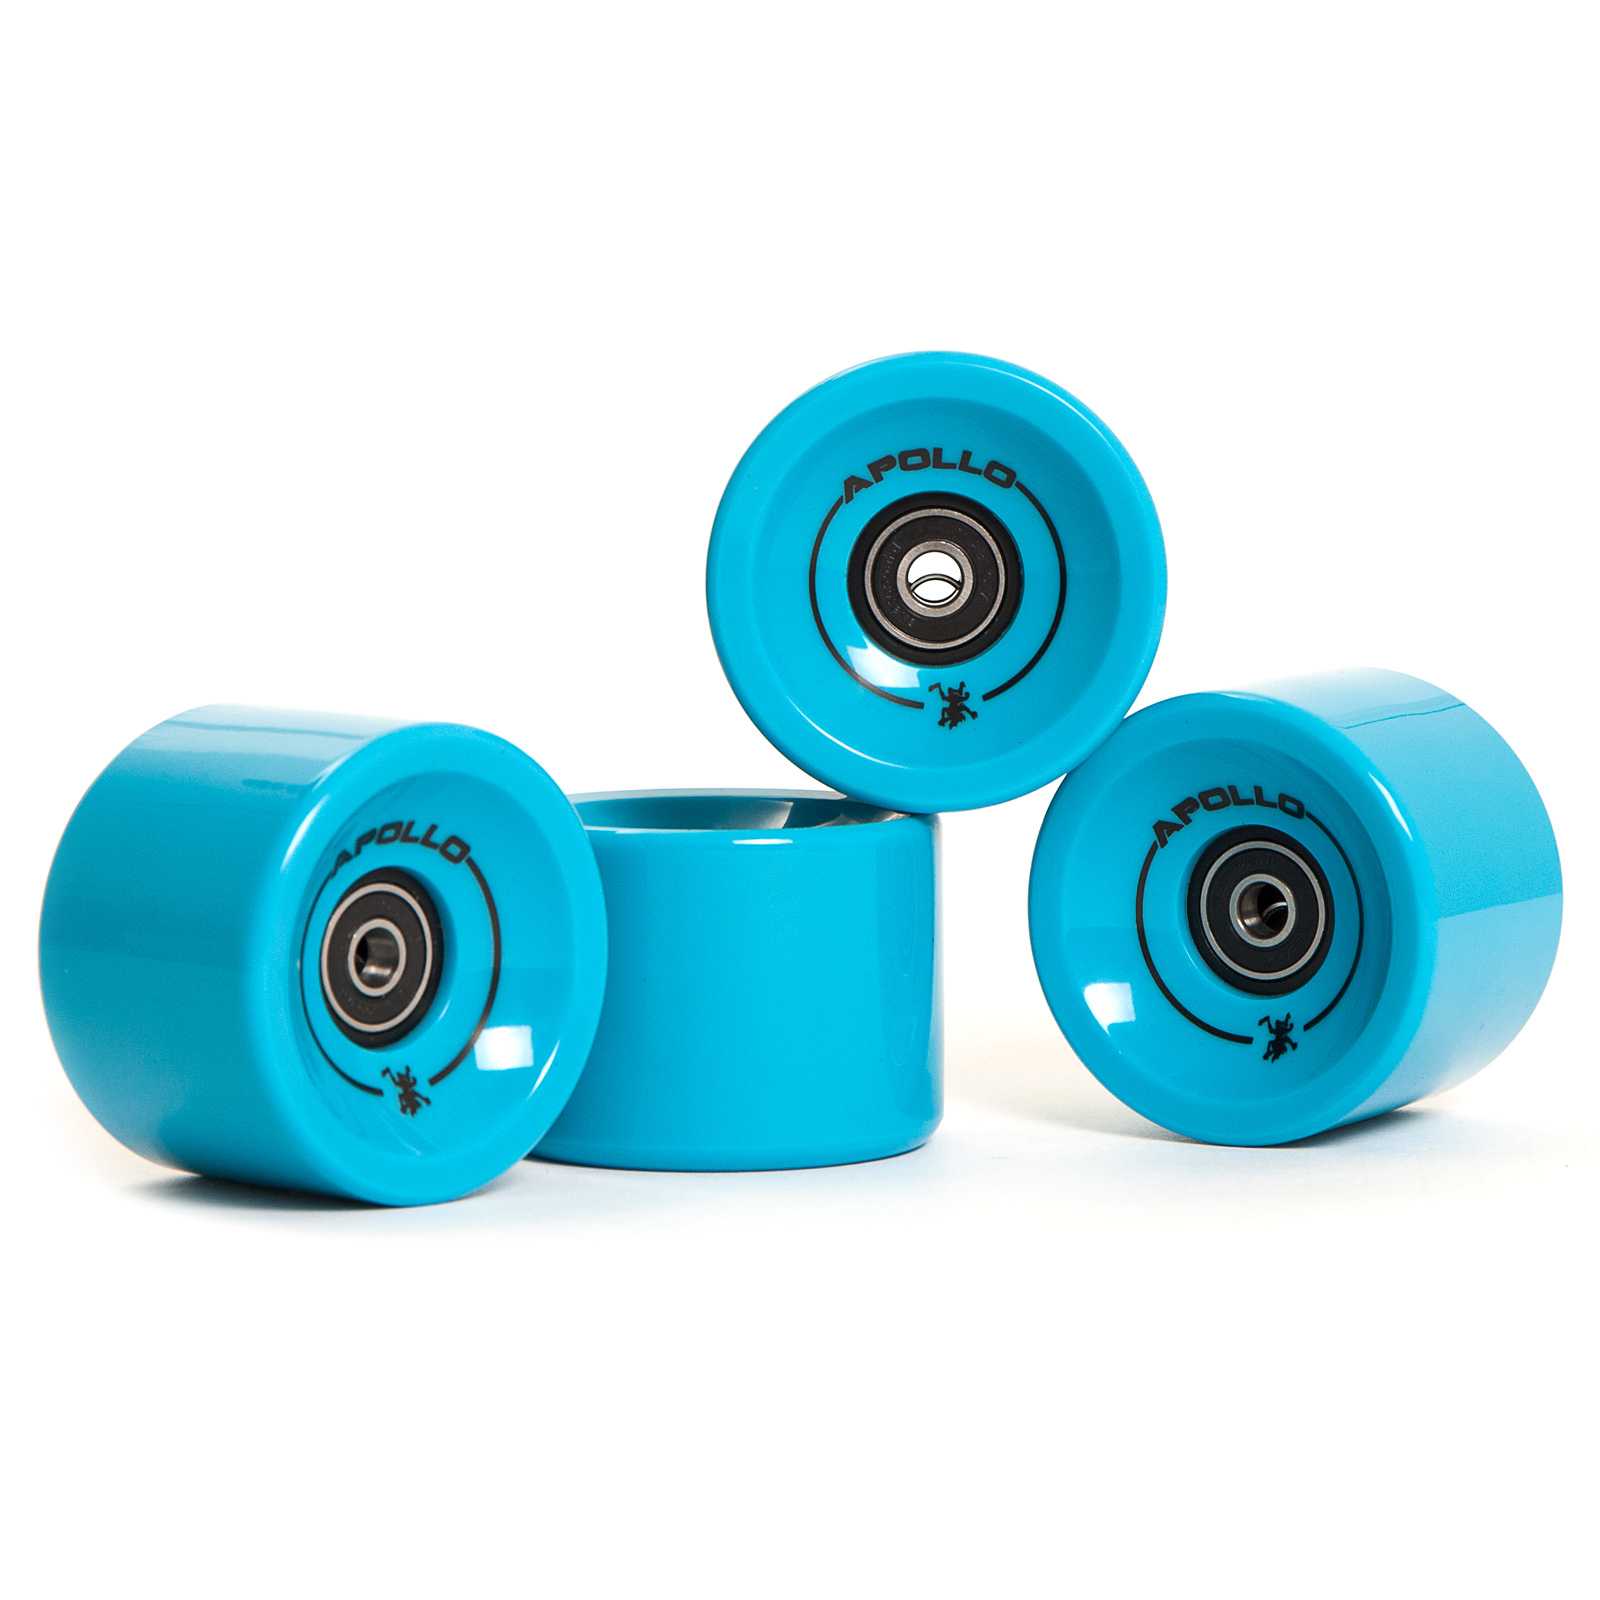 Apollo Longboard Rollen Wheel Set - Solid Blue/ blau - Ersatzrollen